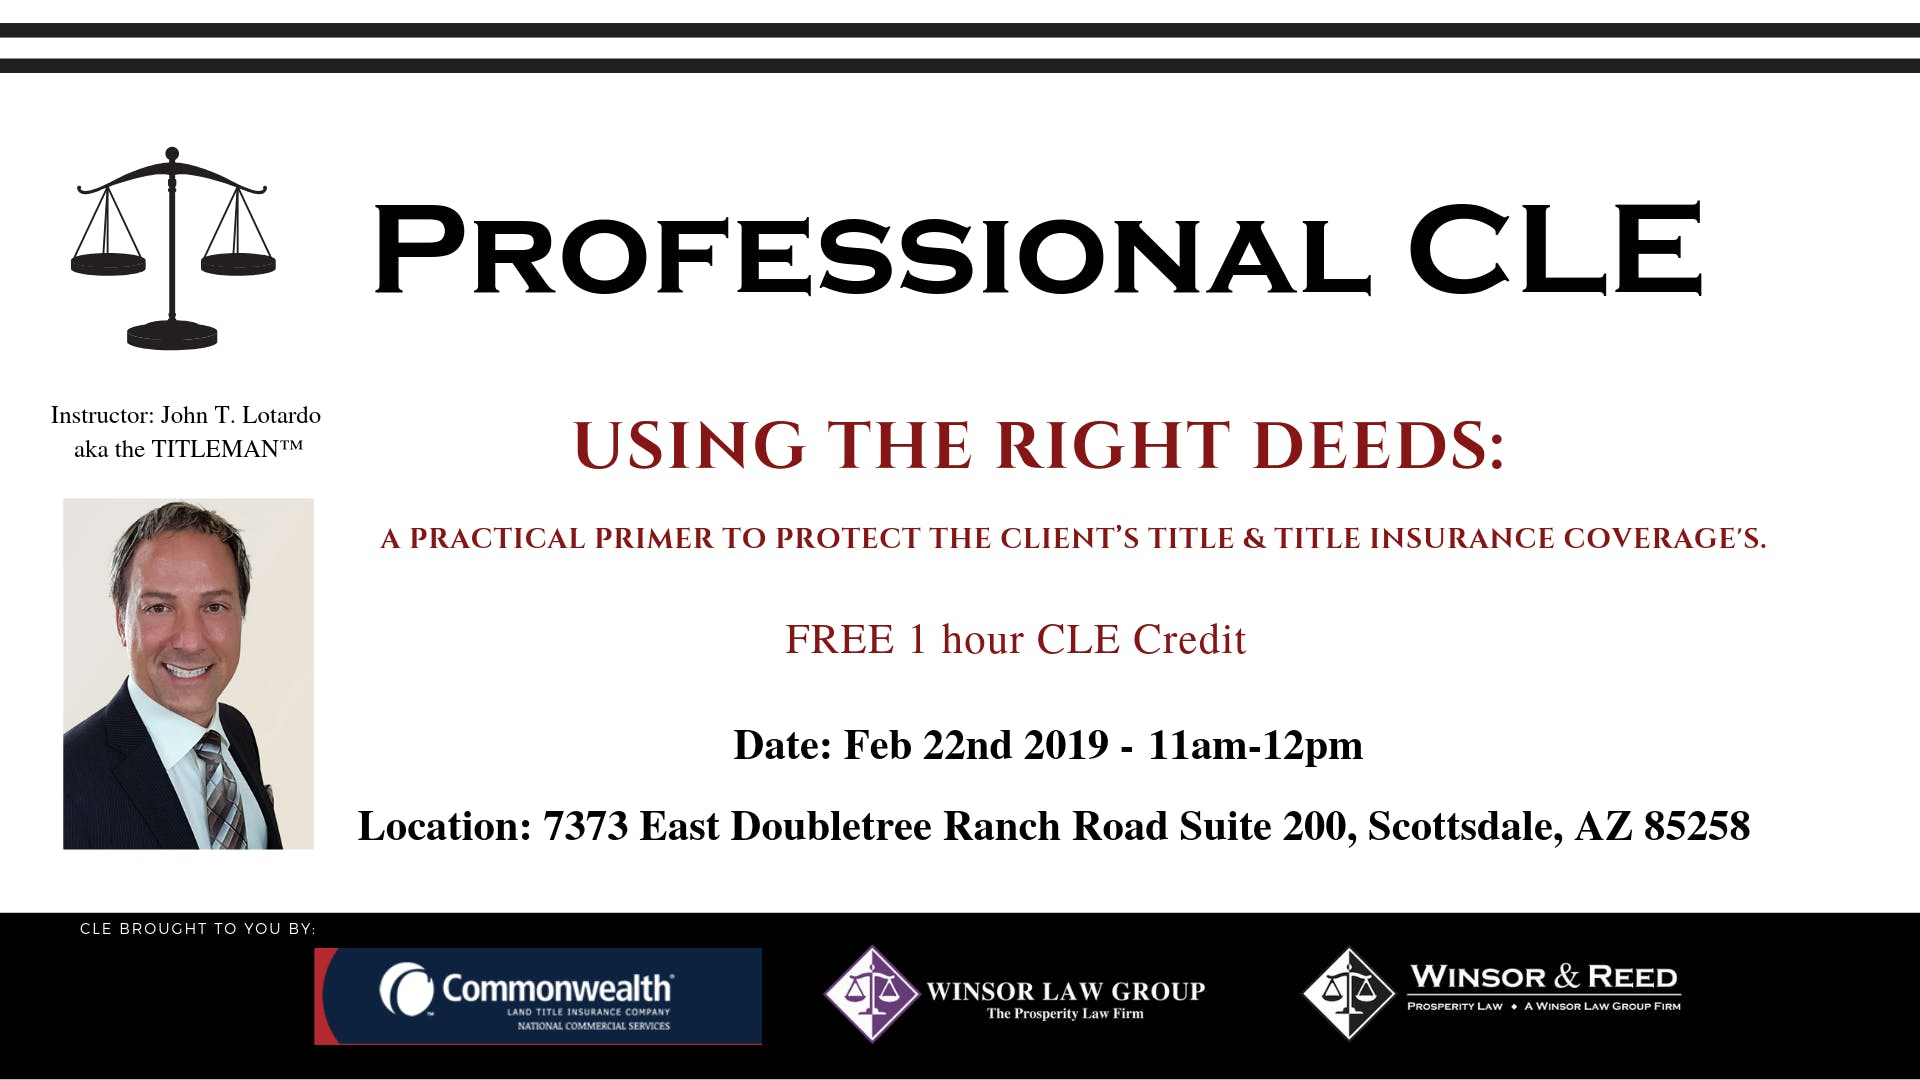 FREE CLE - USING THE RIGHT DEEDS